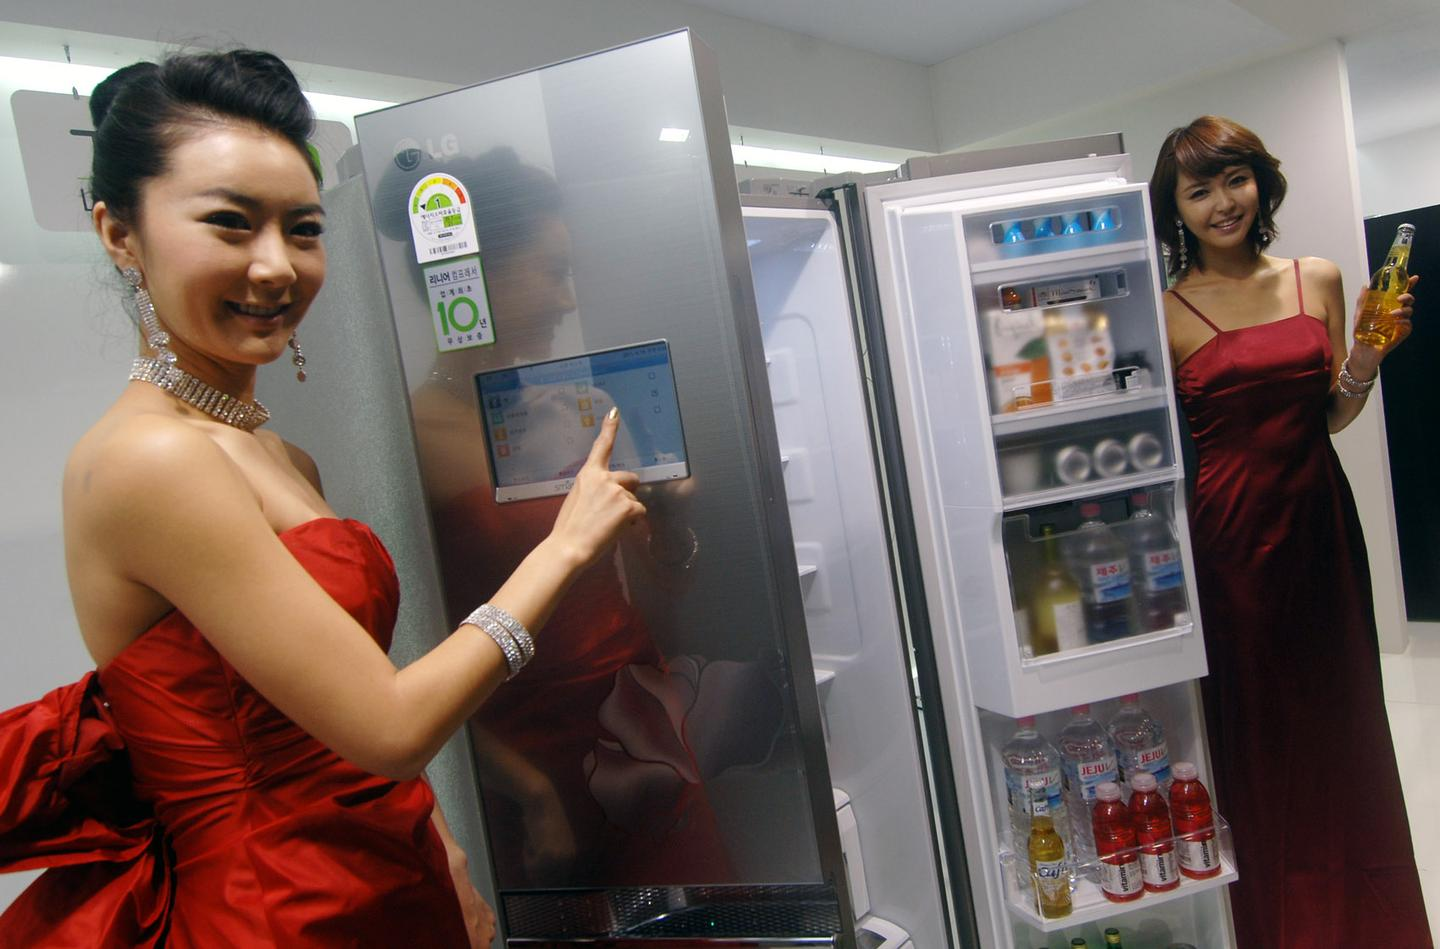 LG has announced the launch of the Smart Refrigerator, which will allow users to get connect with the device with a tablet or smartphone